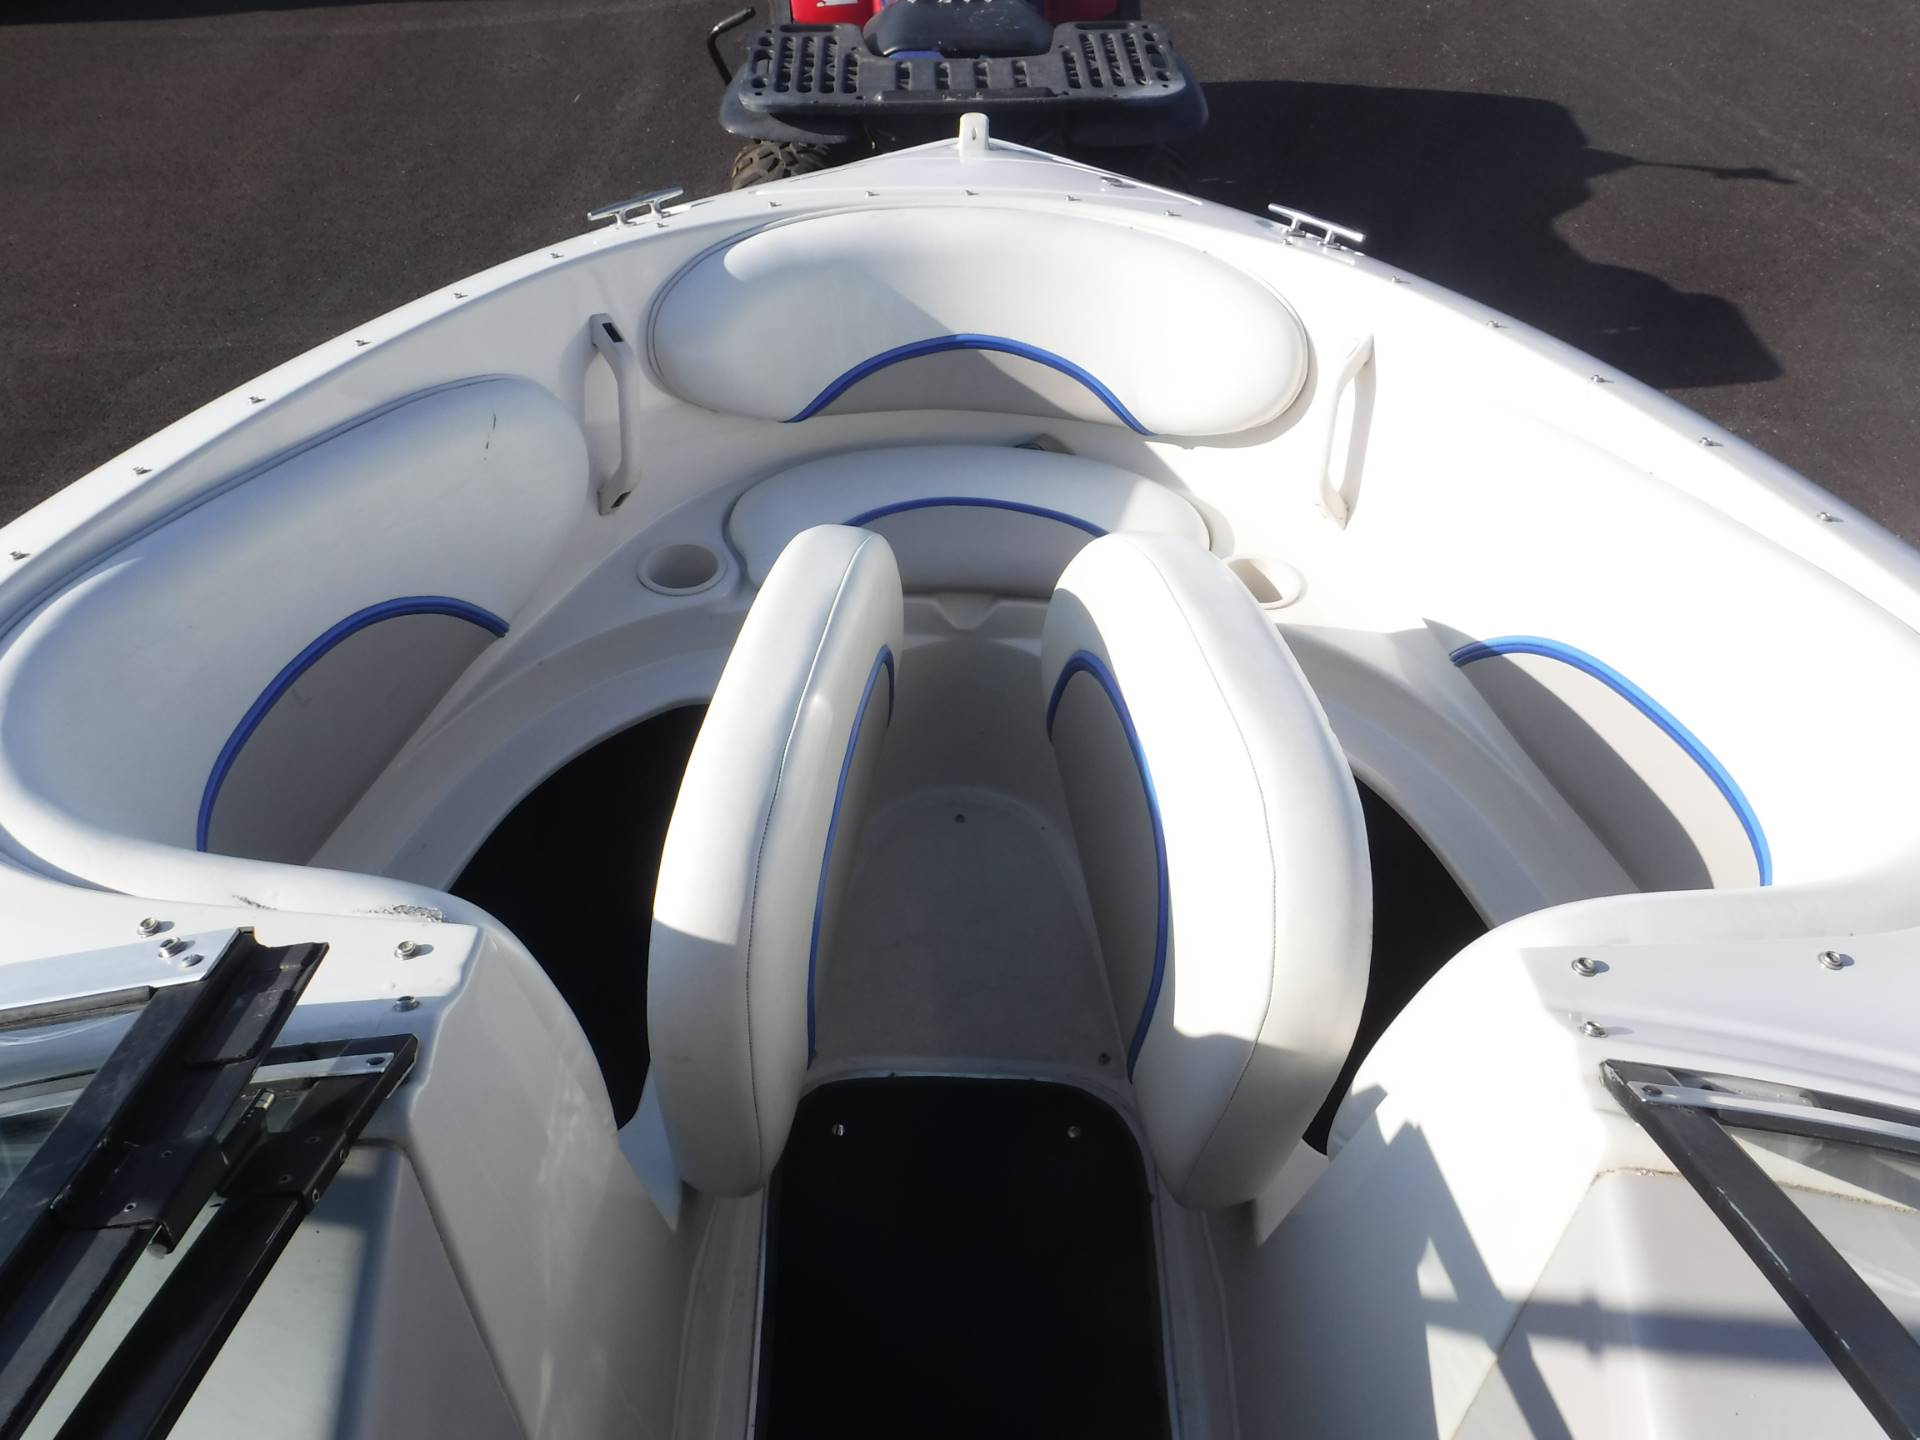 1995 Chris-Craft 19 Concept Bowrider in Spearfish, South Dakota